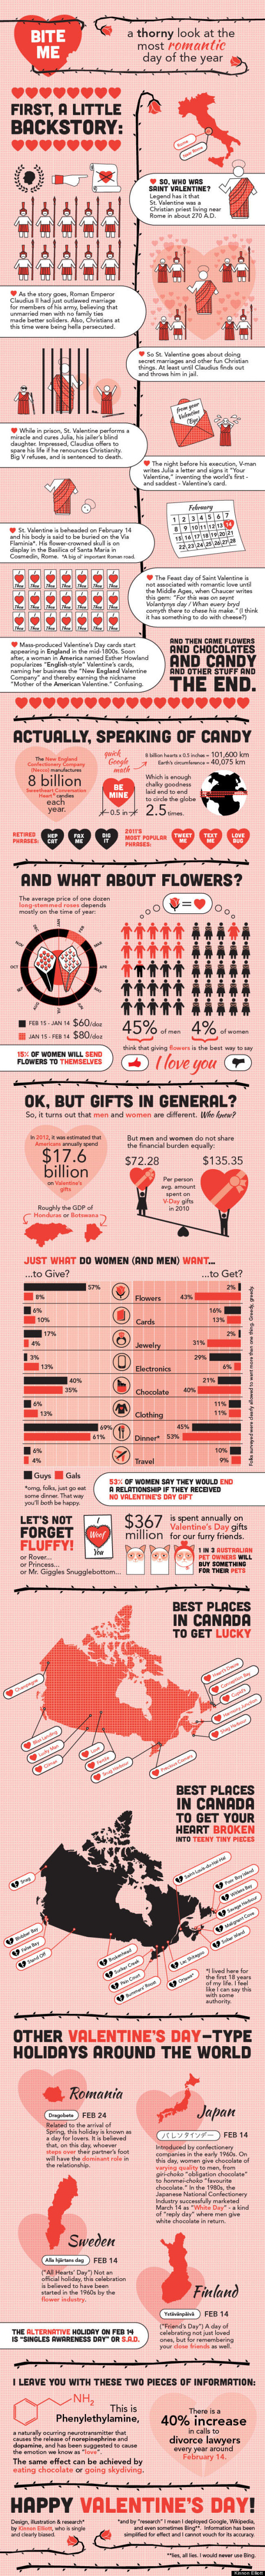 valentines day facts